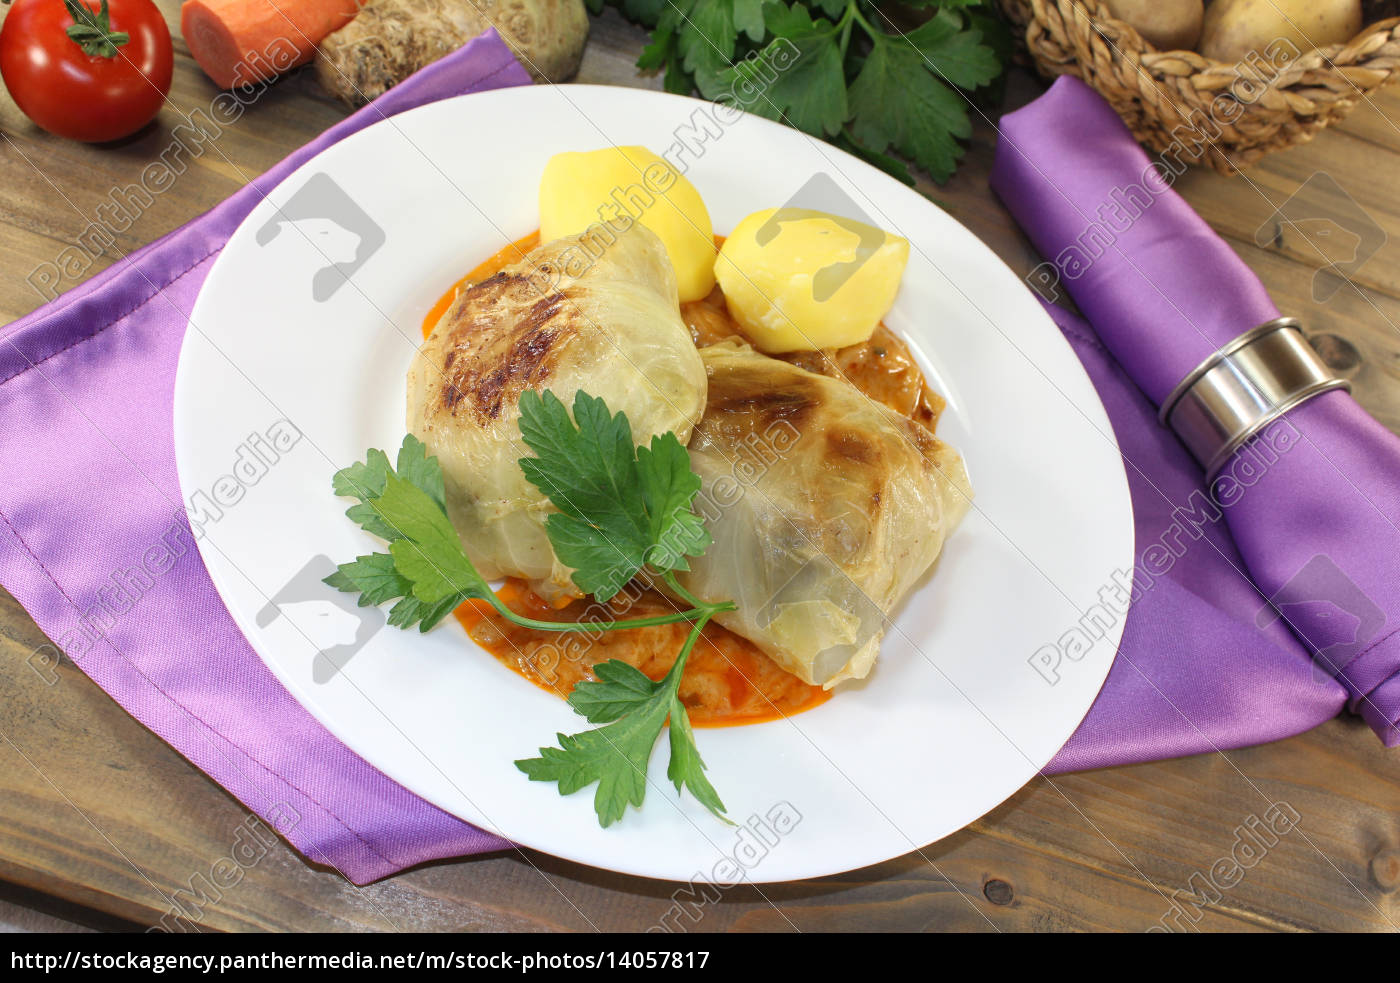 braised, cabbage, roulade, with, potatoes - 14057817